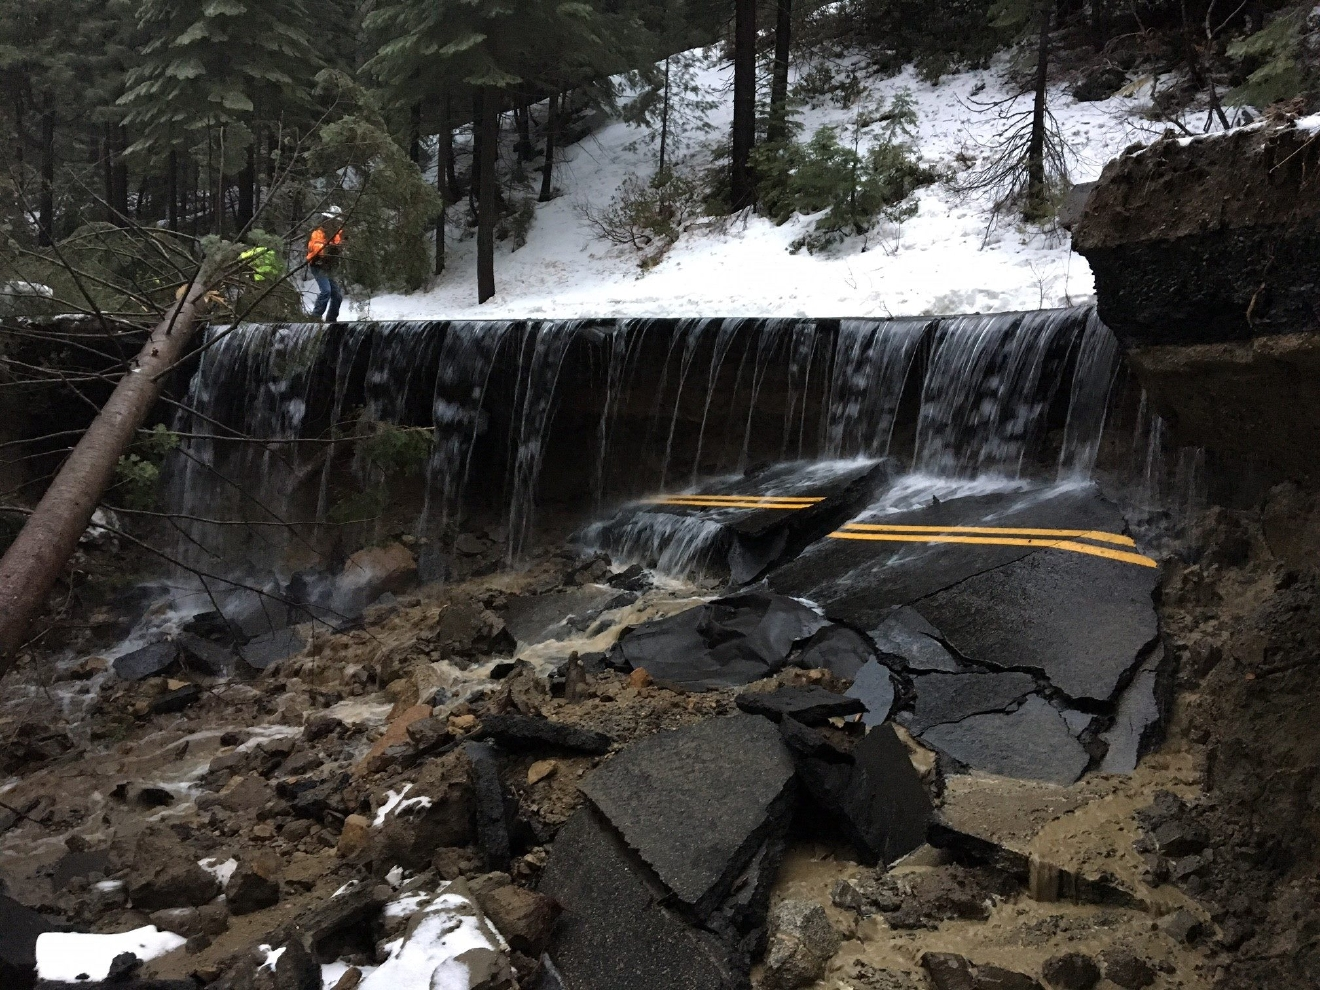 McKinley Grove Road Washed Out, Impassable After Storm